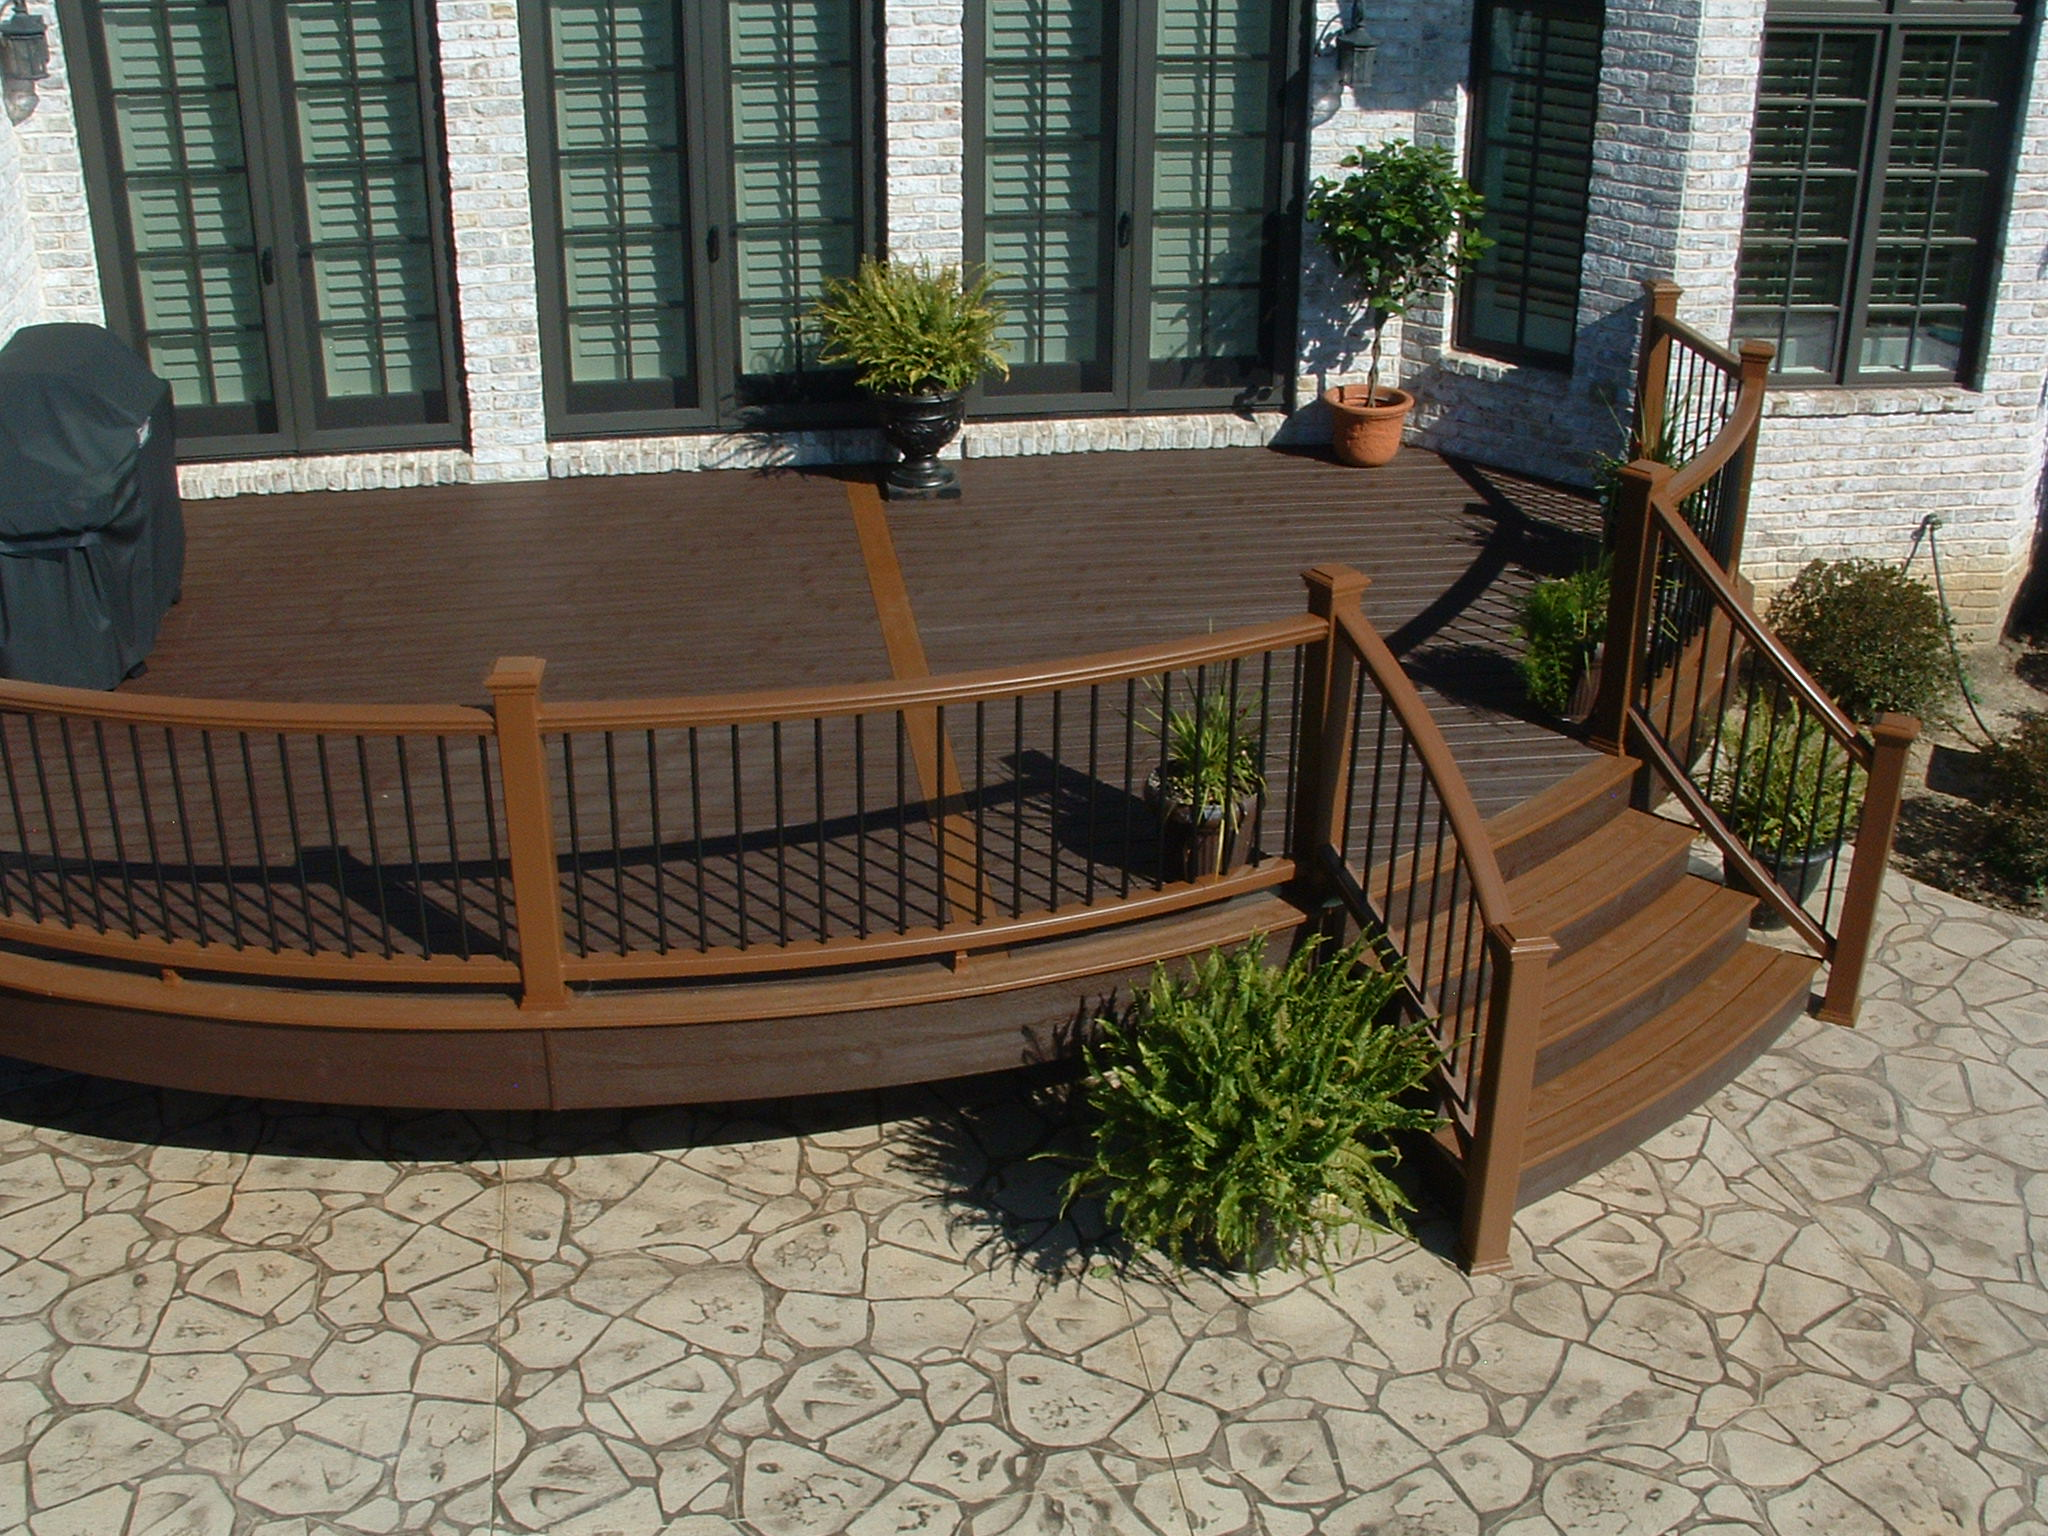 Exterior Fascinating Curved Trex Transcend Decking Amazing Plastic Decking  That Looks Like Wood Interesting Pictures Of Trex Decking Design Ideas Best   ...